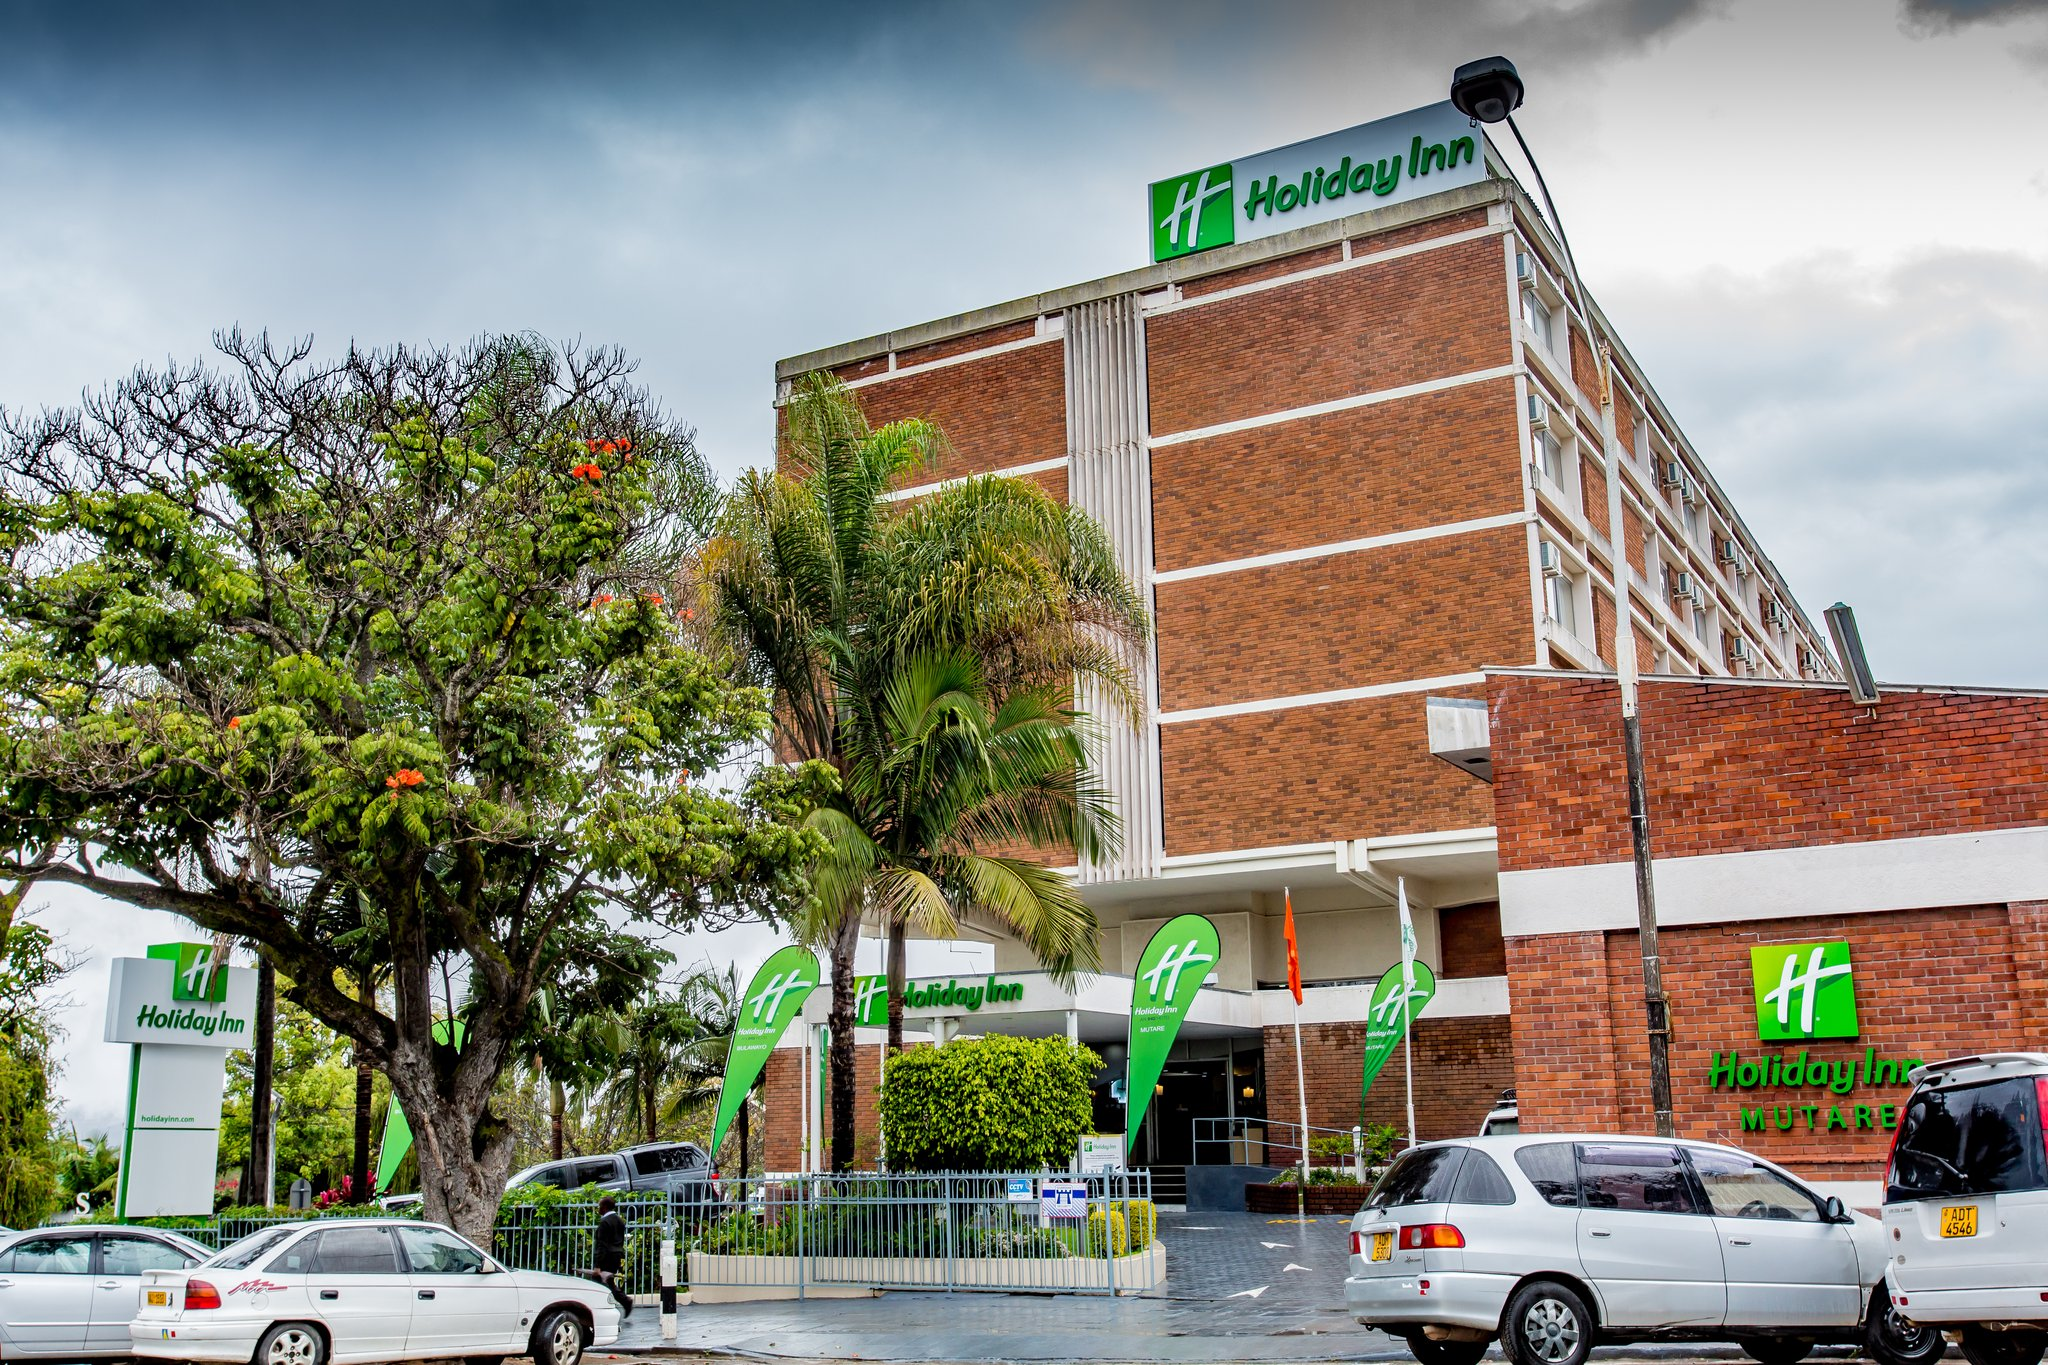 Holiday Inn Mutare - Mutare, Zimbabwe Meeting Rooms & Event Space